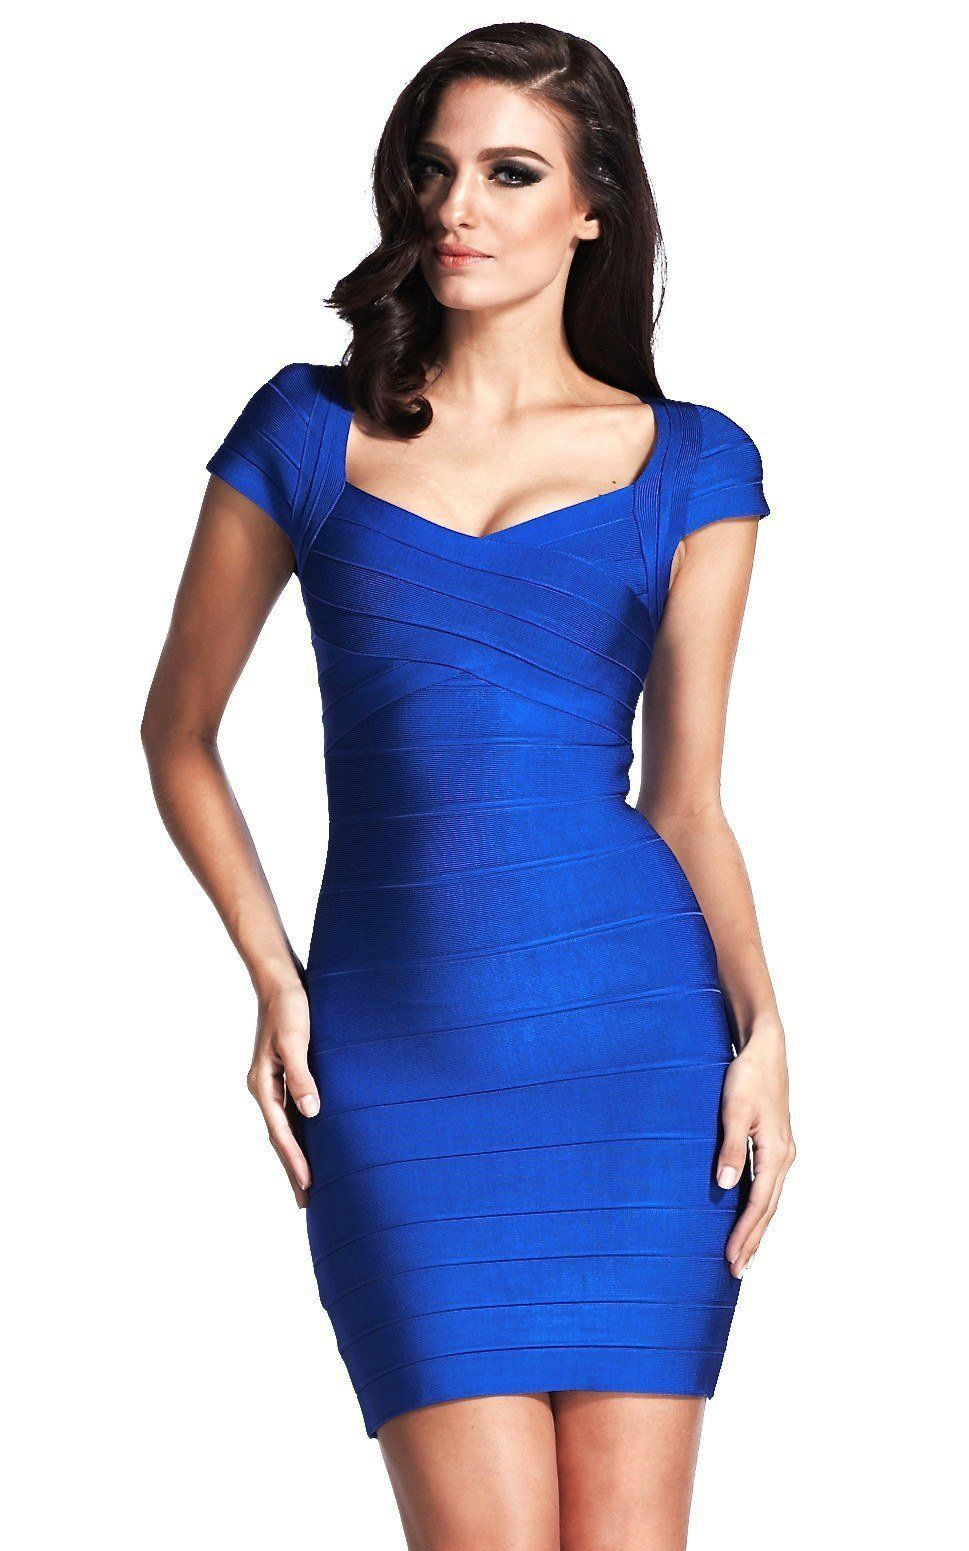 Electric blue and cobalt blue clothing ideas with cocktail dress, bandage dress, day dress